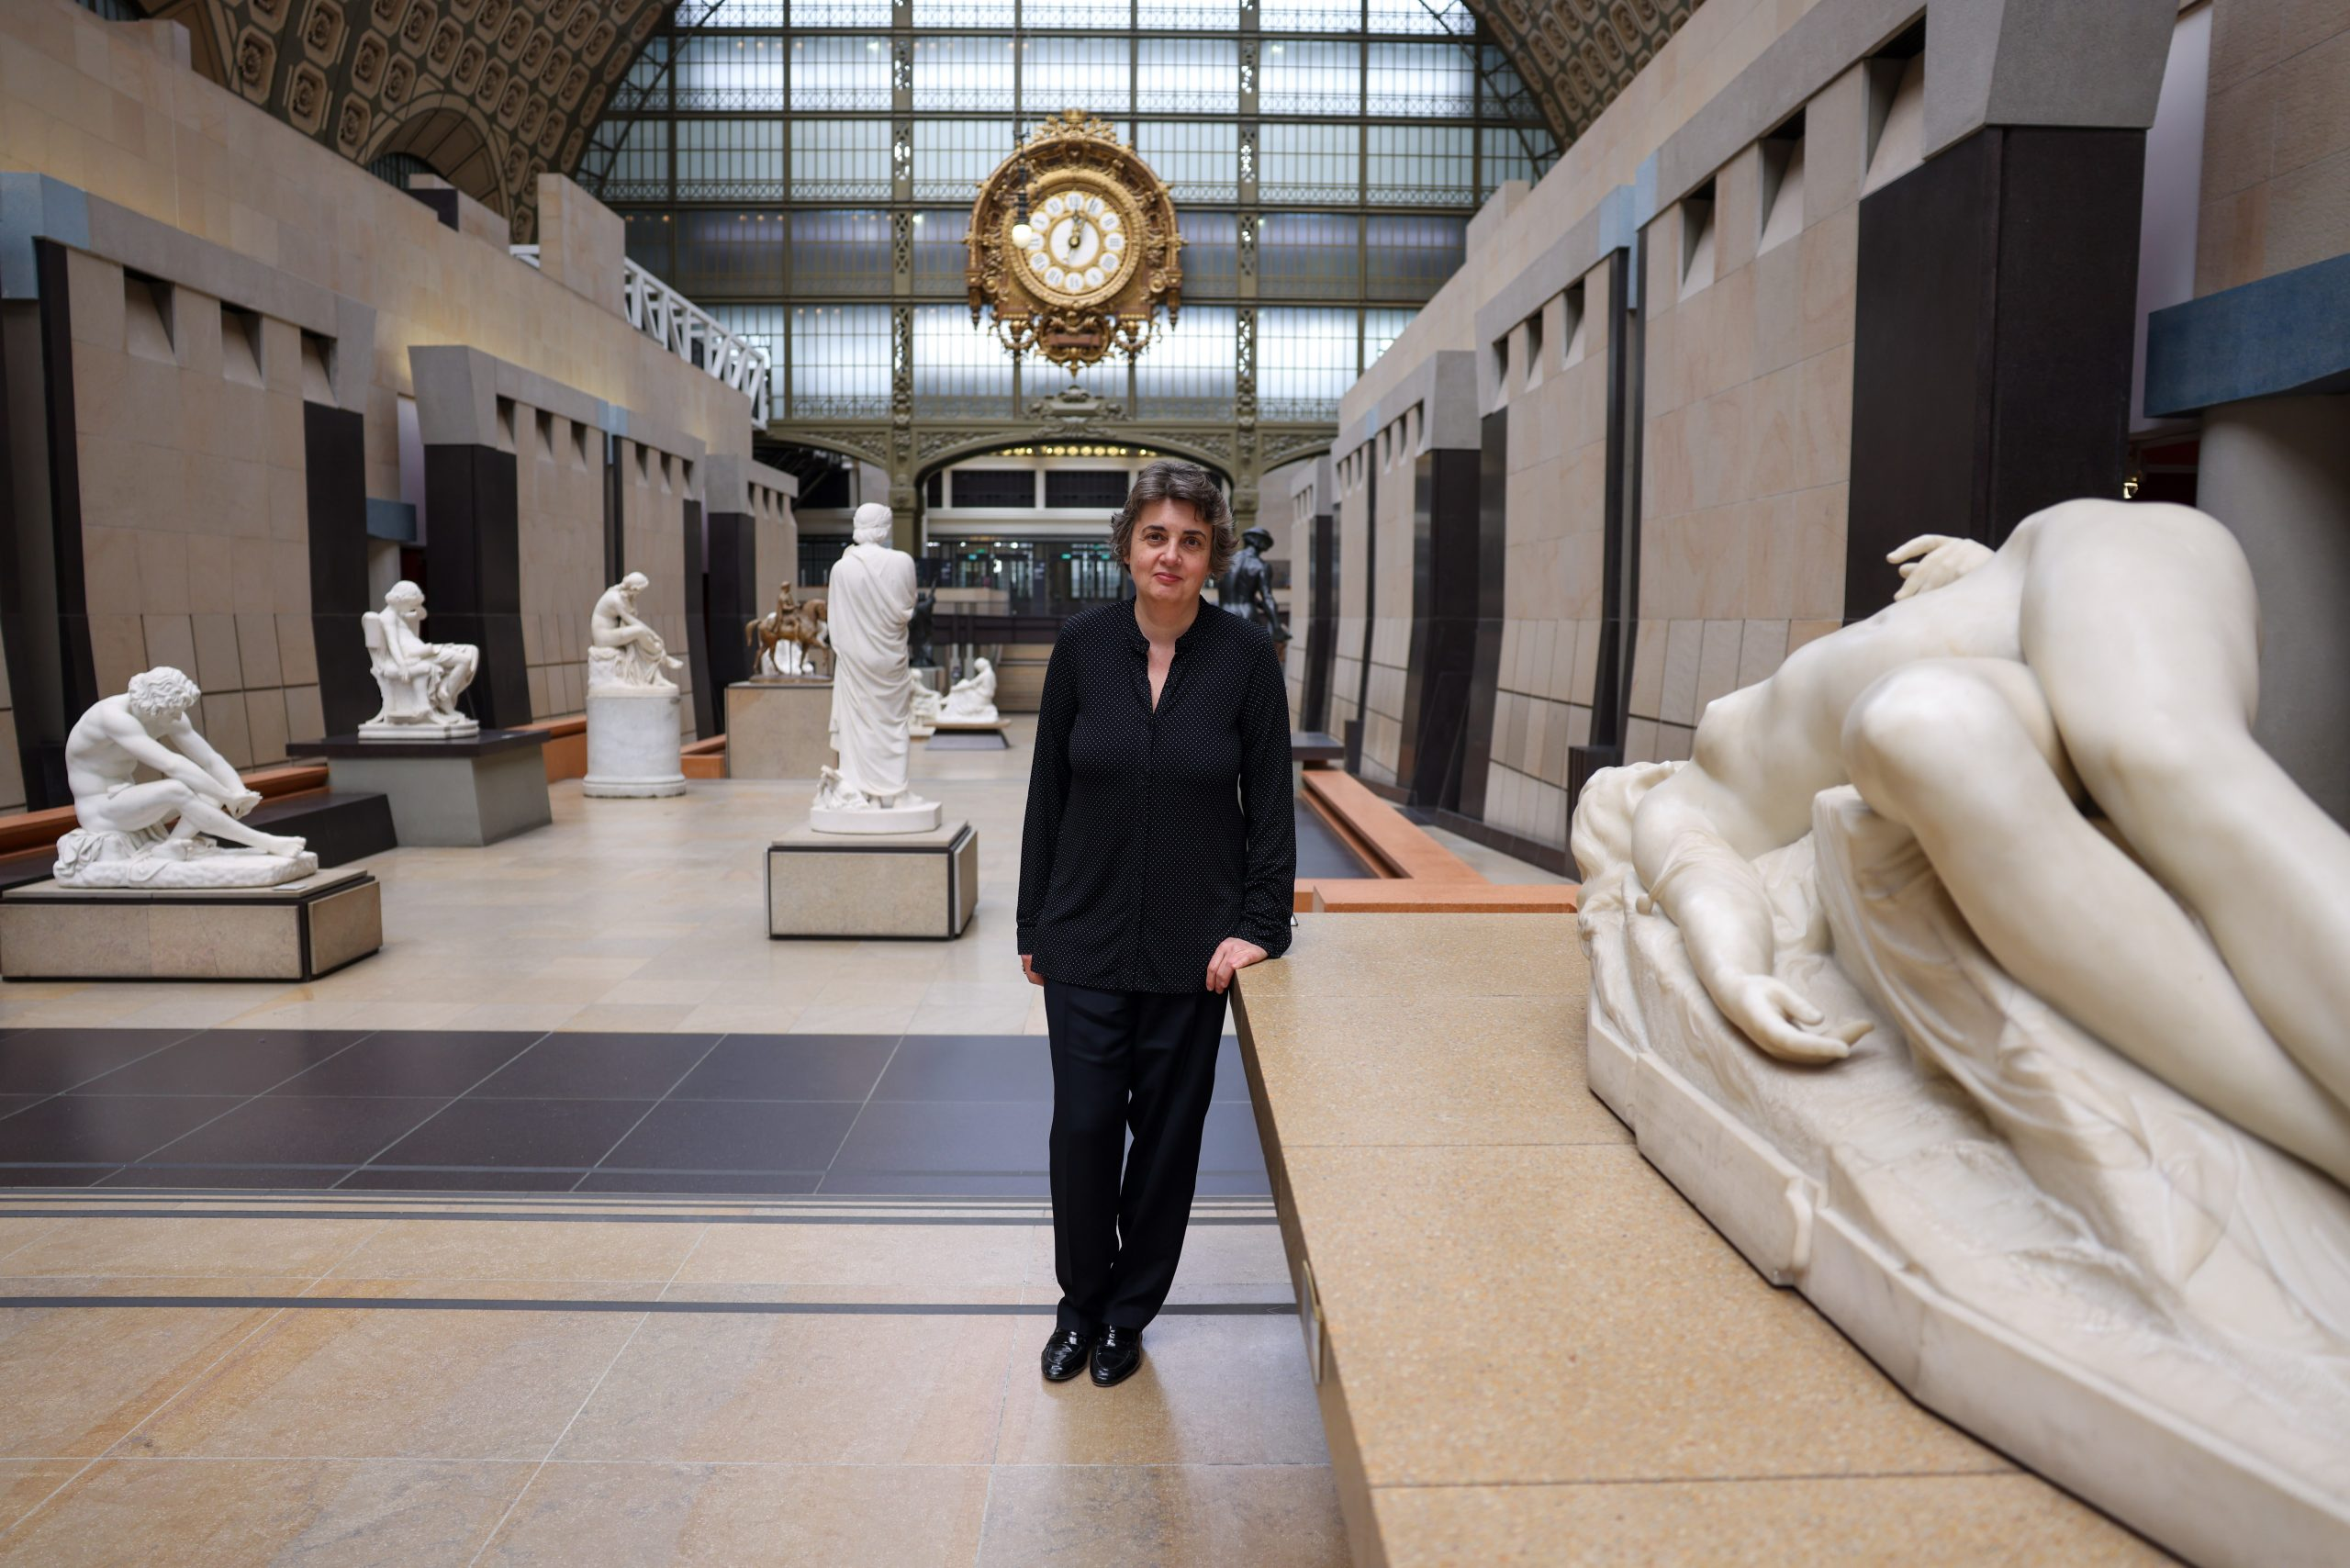 From the Louvre's First Female Director to the Death of Eric Carle: The Best & Worst of the Art World This Week | Artnet News